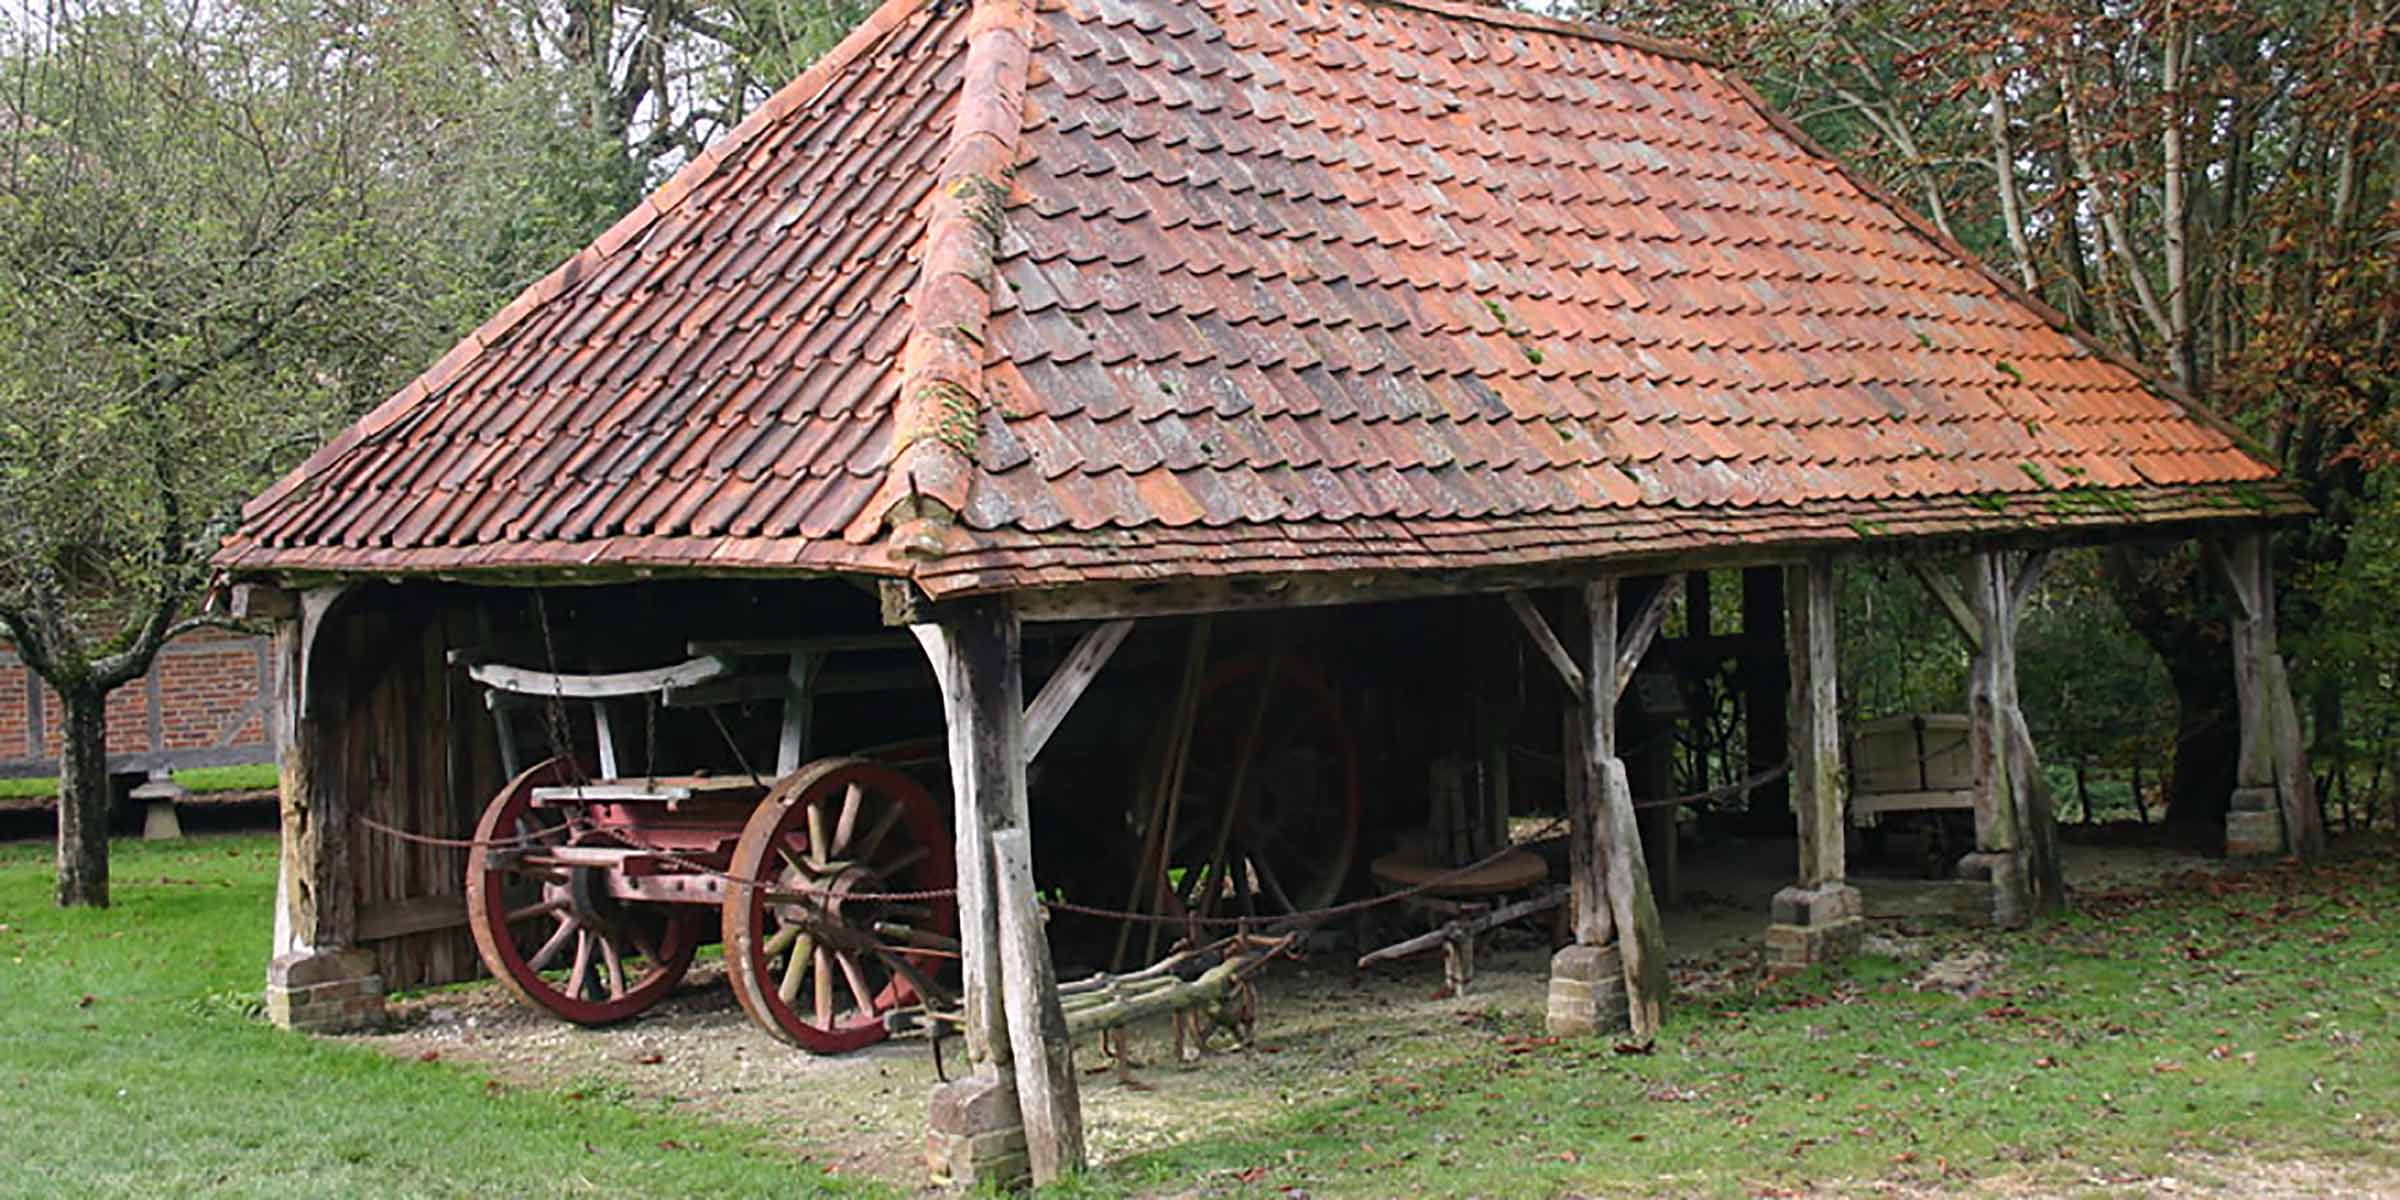 Wagon shed from Wiston